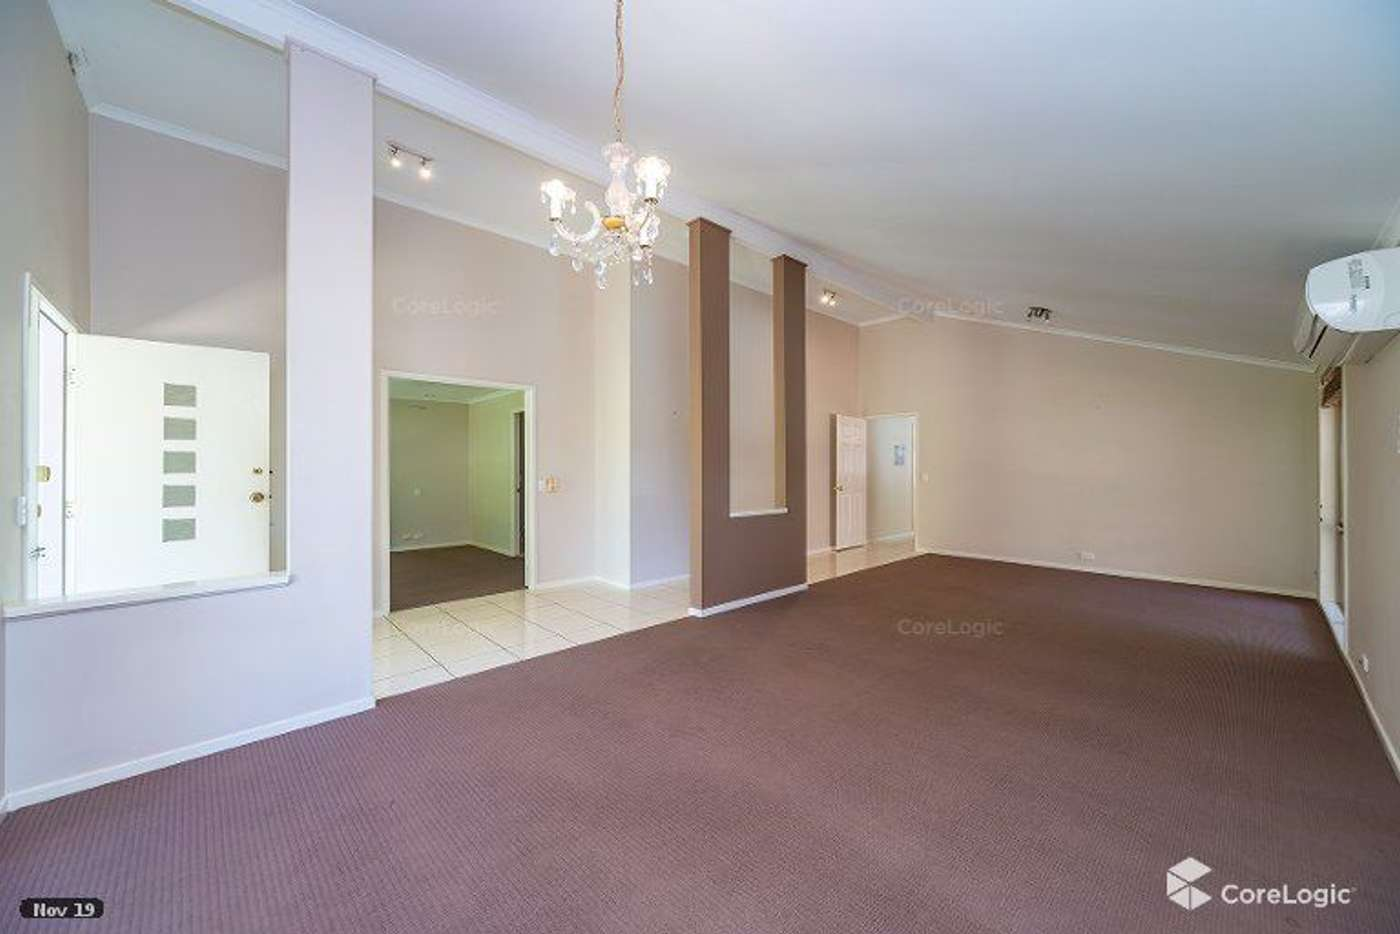 Seventh view of Homely house listing, 31 Jack Nicklaus Way, Parkwood QLD 4214